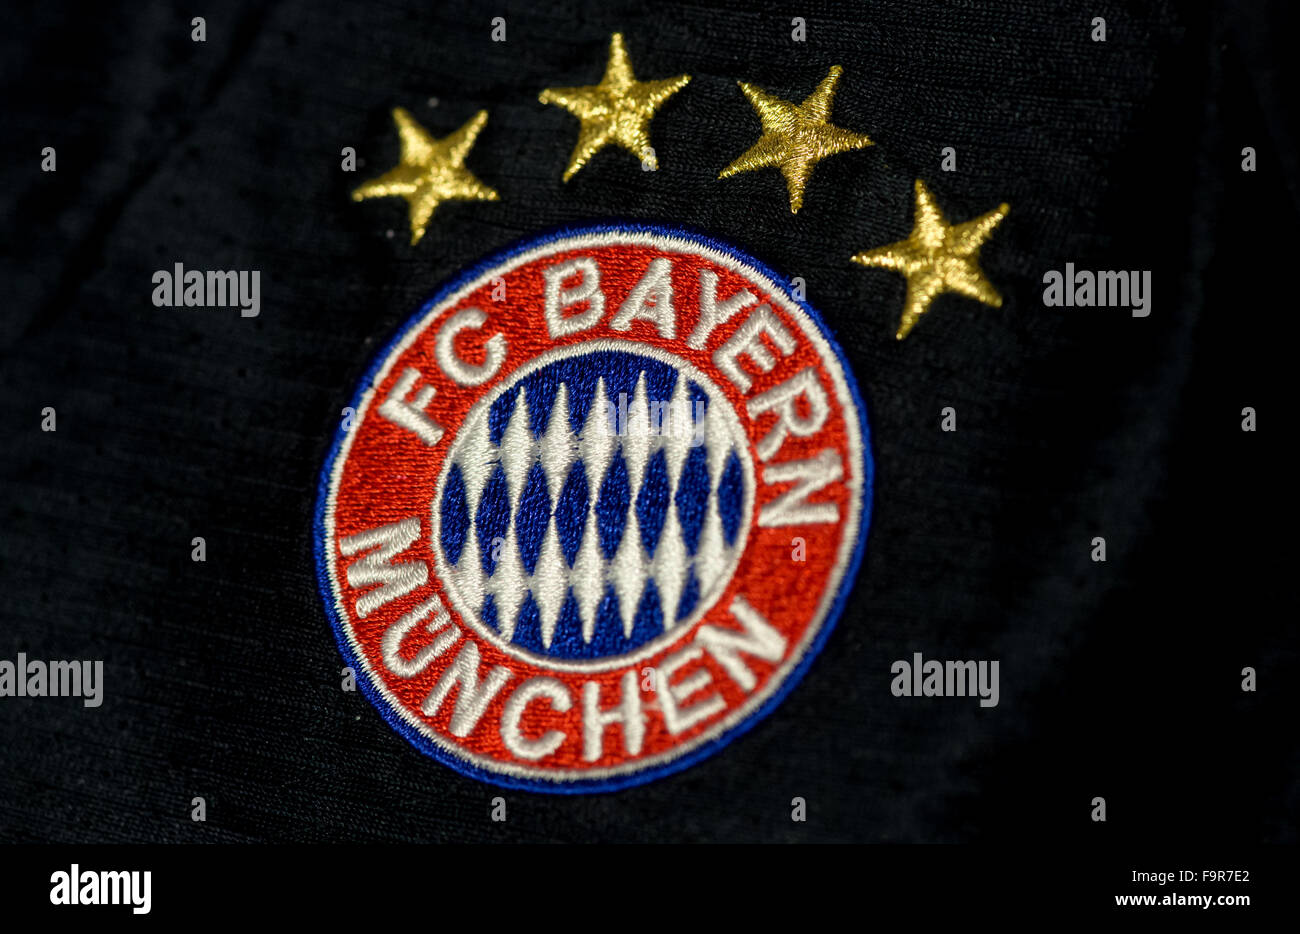 A jerseys with the logo of German Bundesliga soccer club